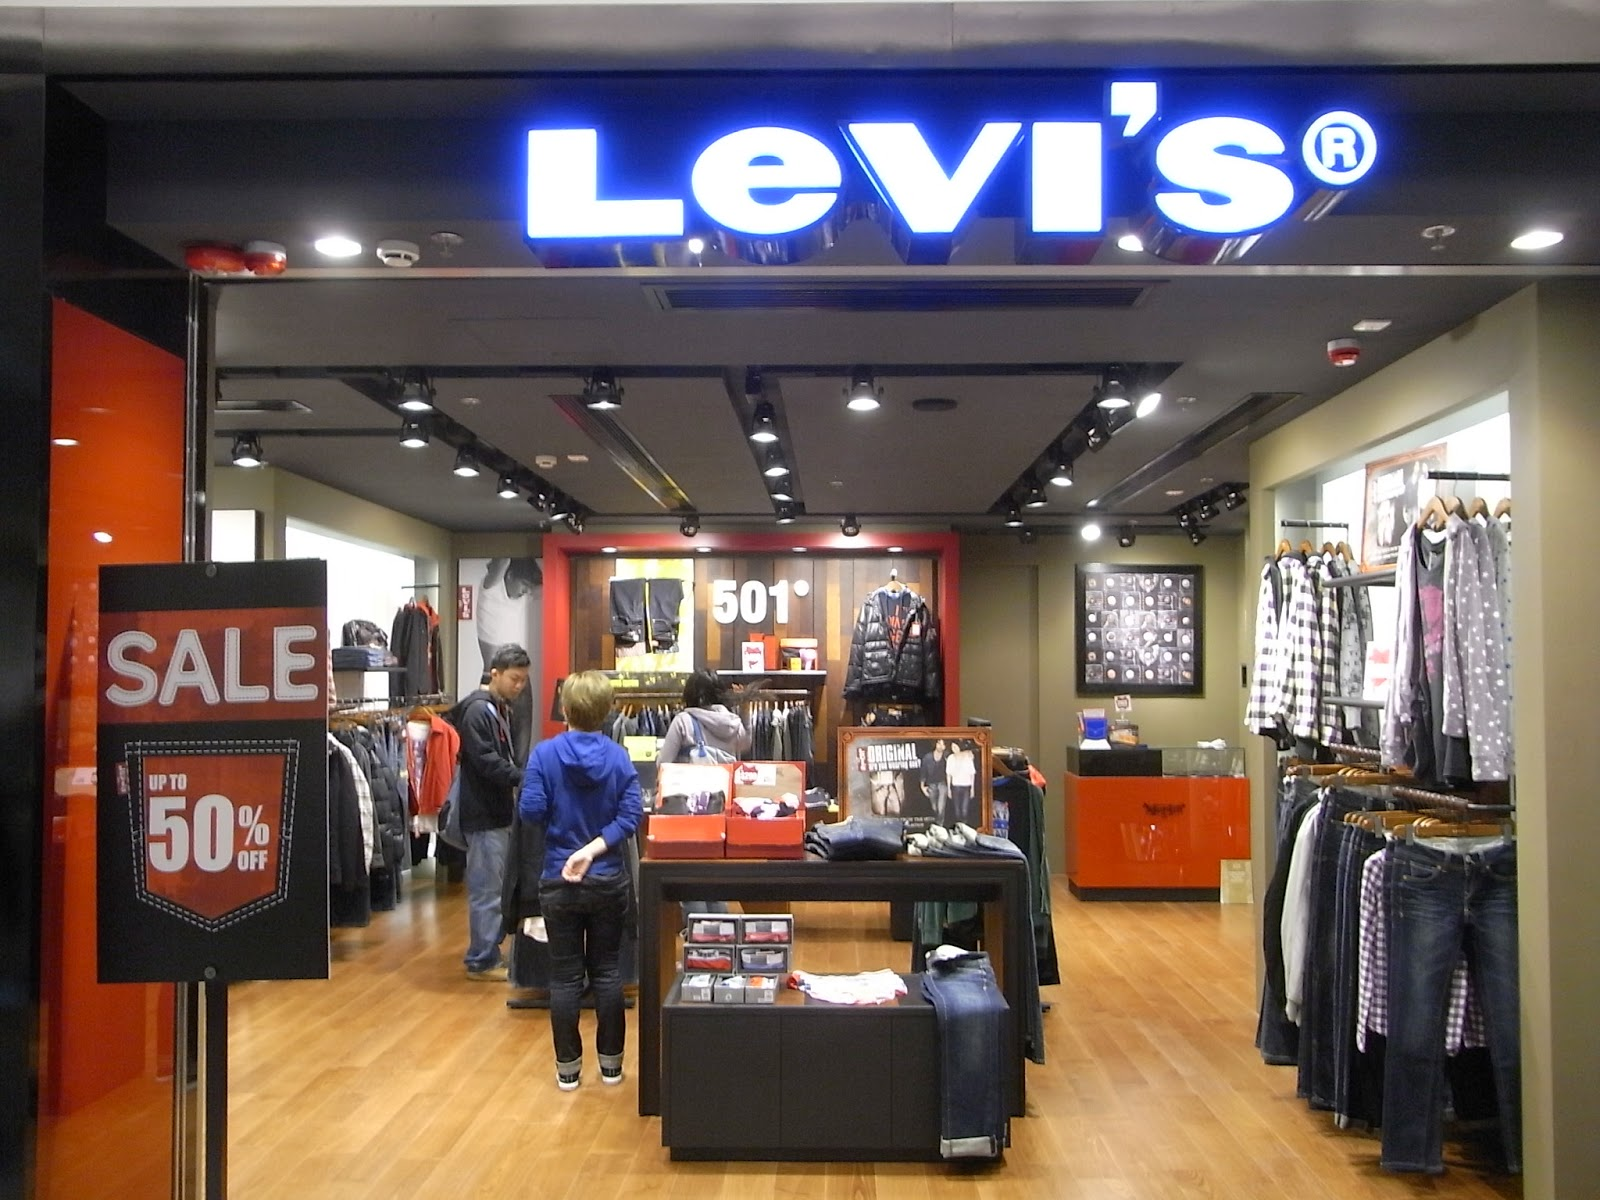 For the warmer months, Levi's® offers a great selection of men's shorts, ranging from cargos to denim shorts. You'll also find a collection of shirts, accessories and shoes in the Levi's® men's assortment to complement your favorite jeans or shorts.